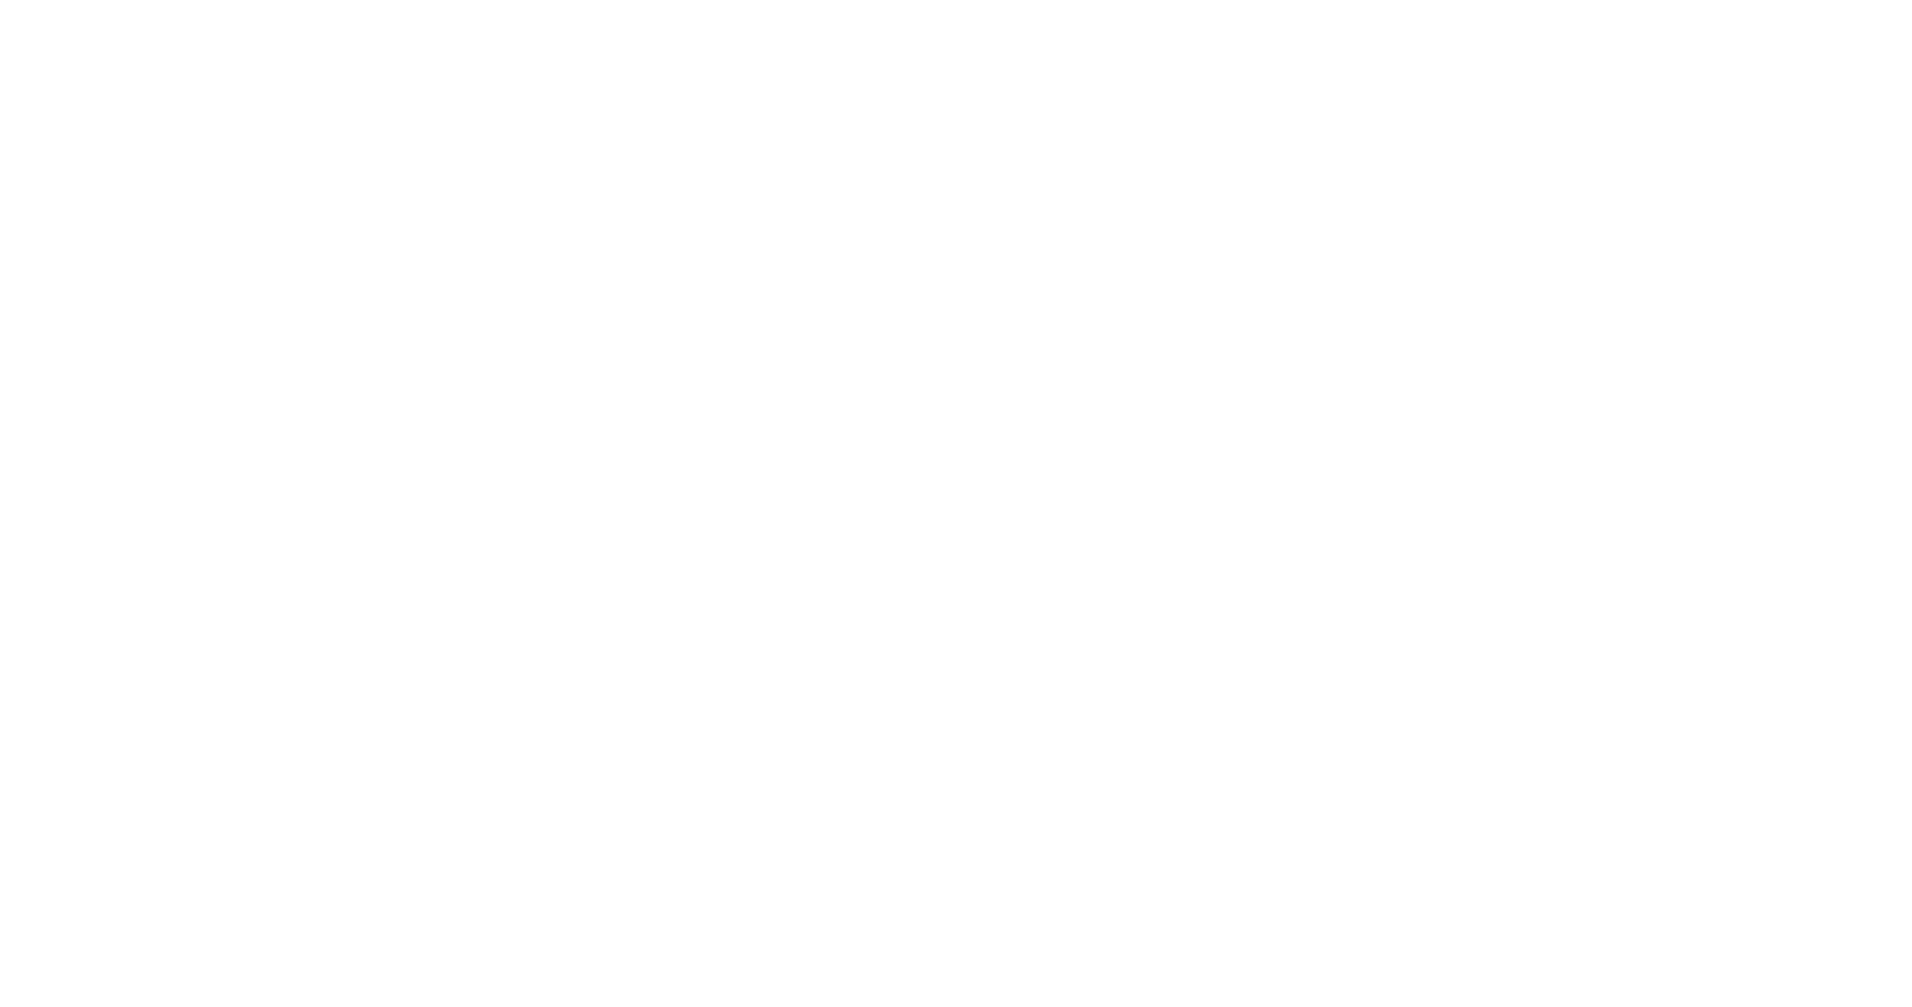 The Axis Hotel